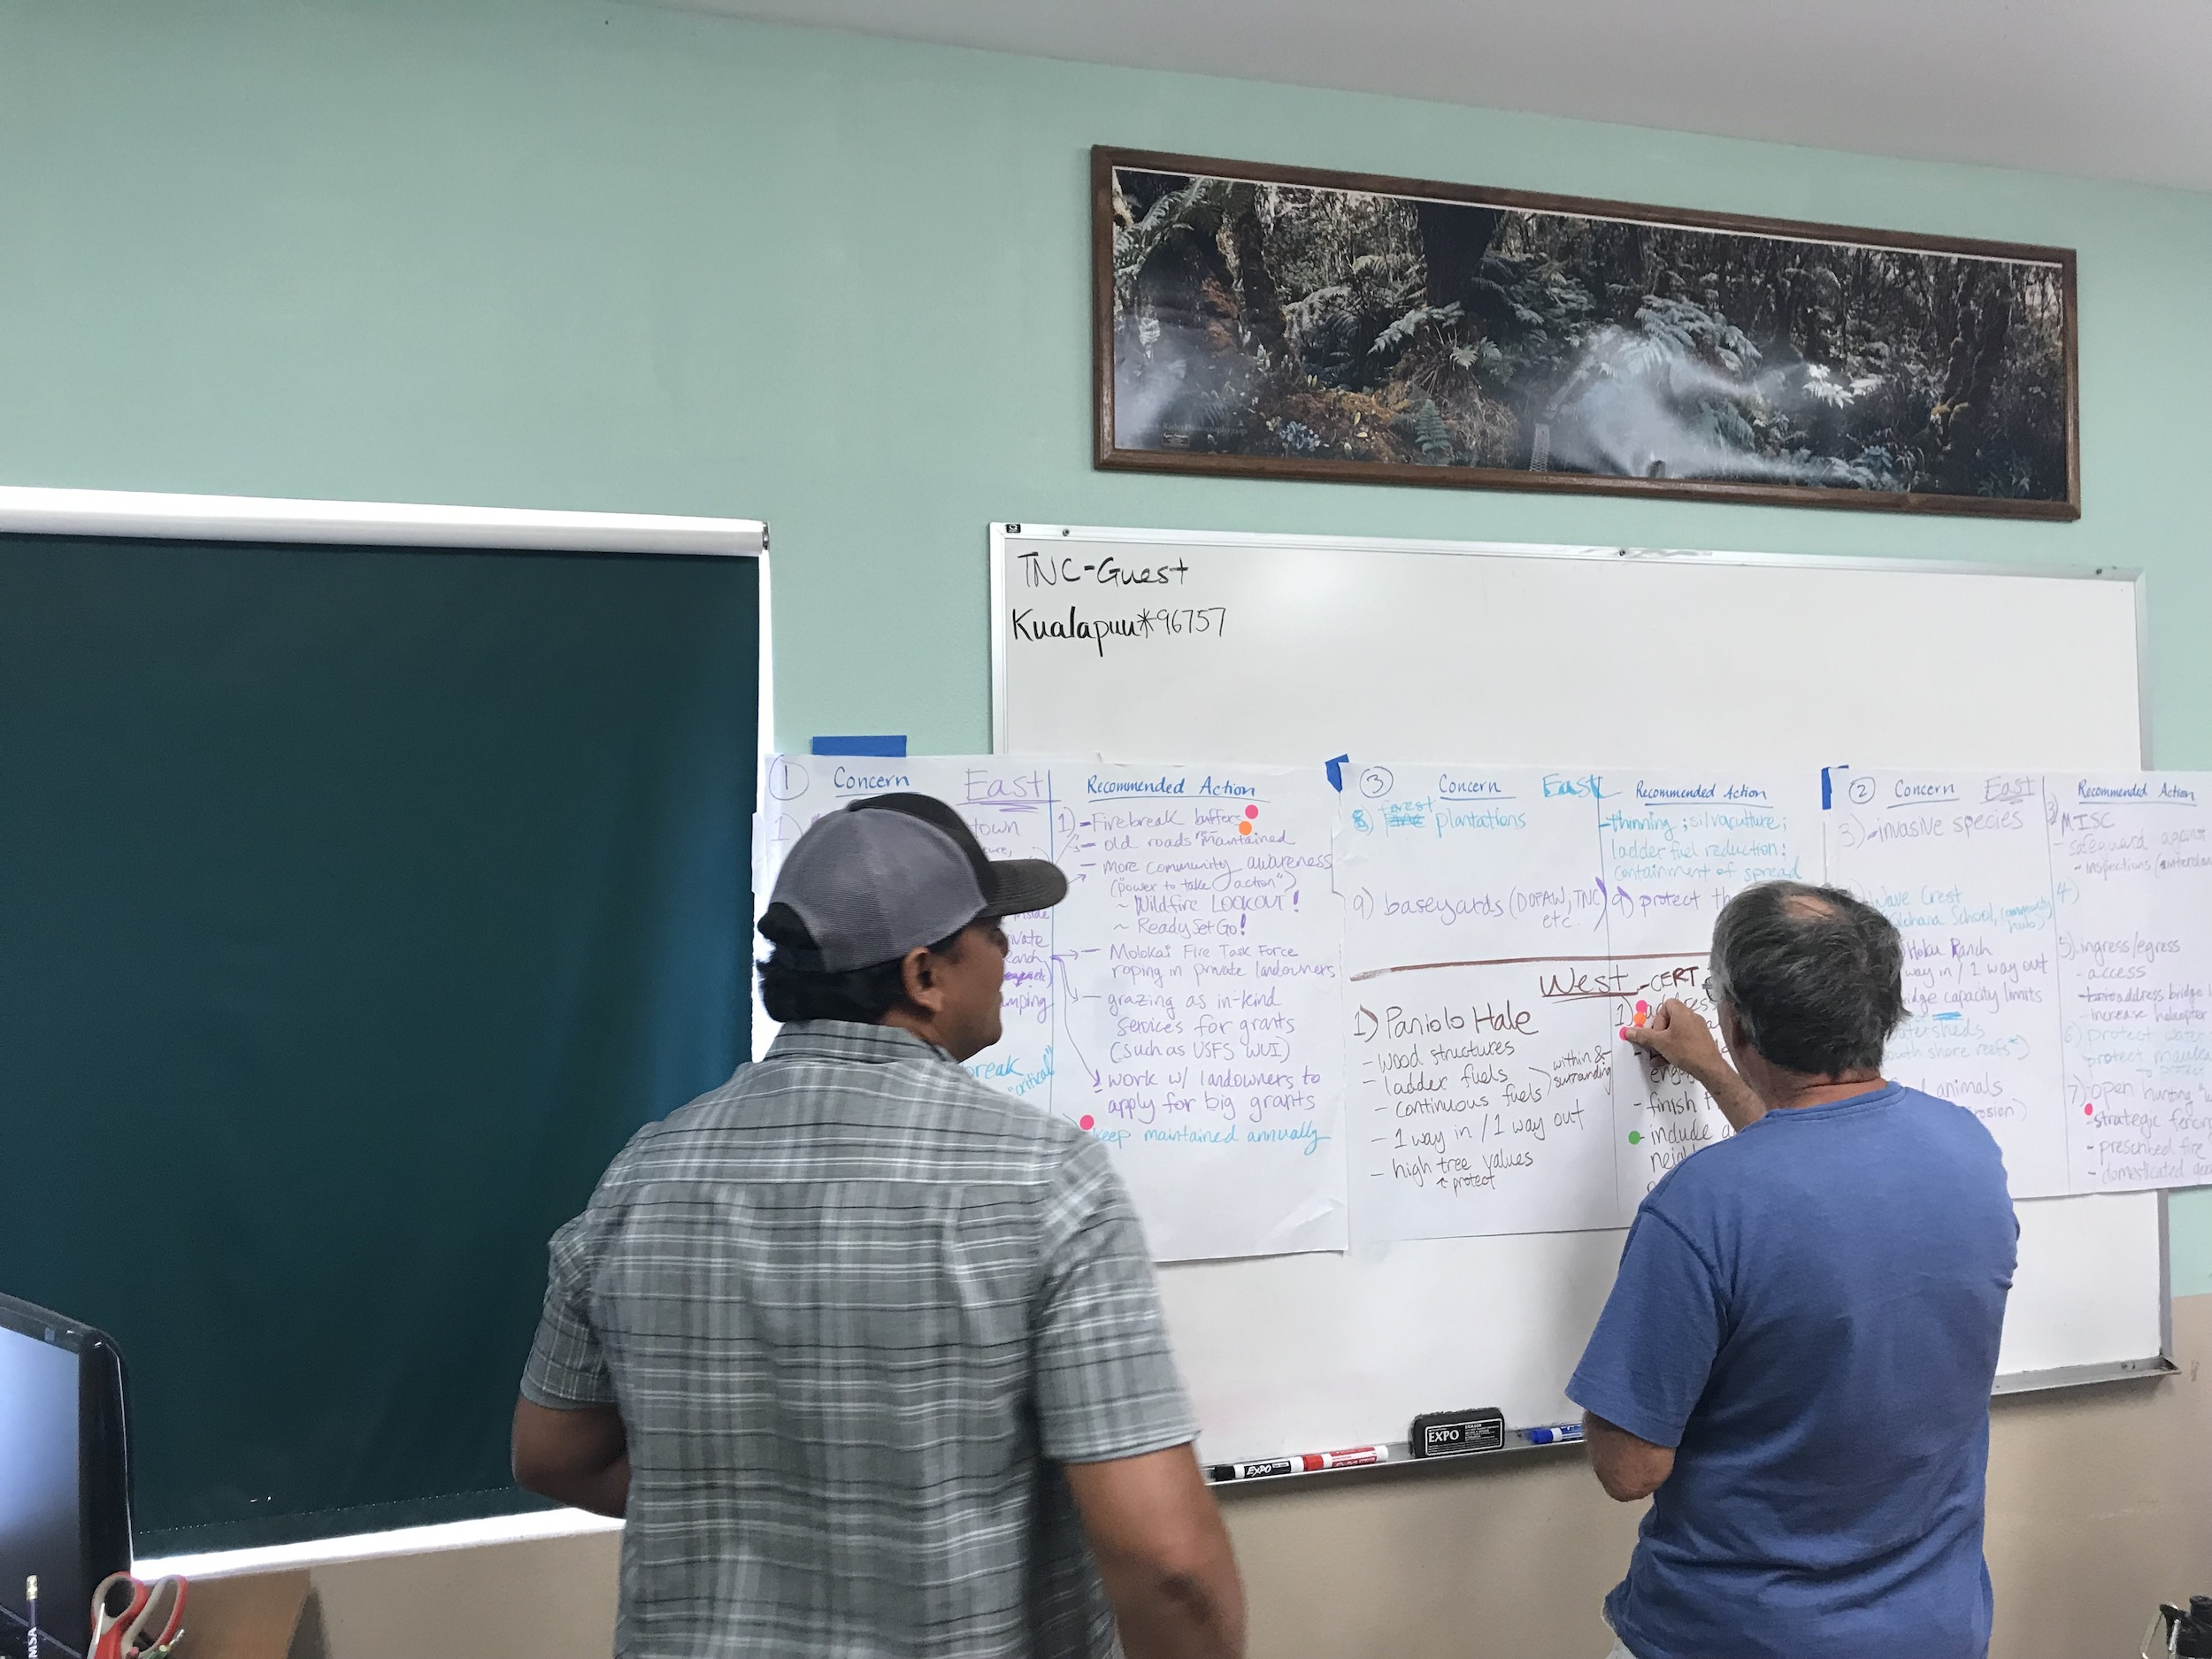 Molokai Vegetative Fuels Management Collaborative Action Planning and Mapping Workshop_4_2_2019_27.jpg